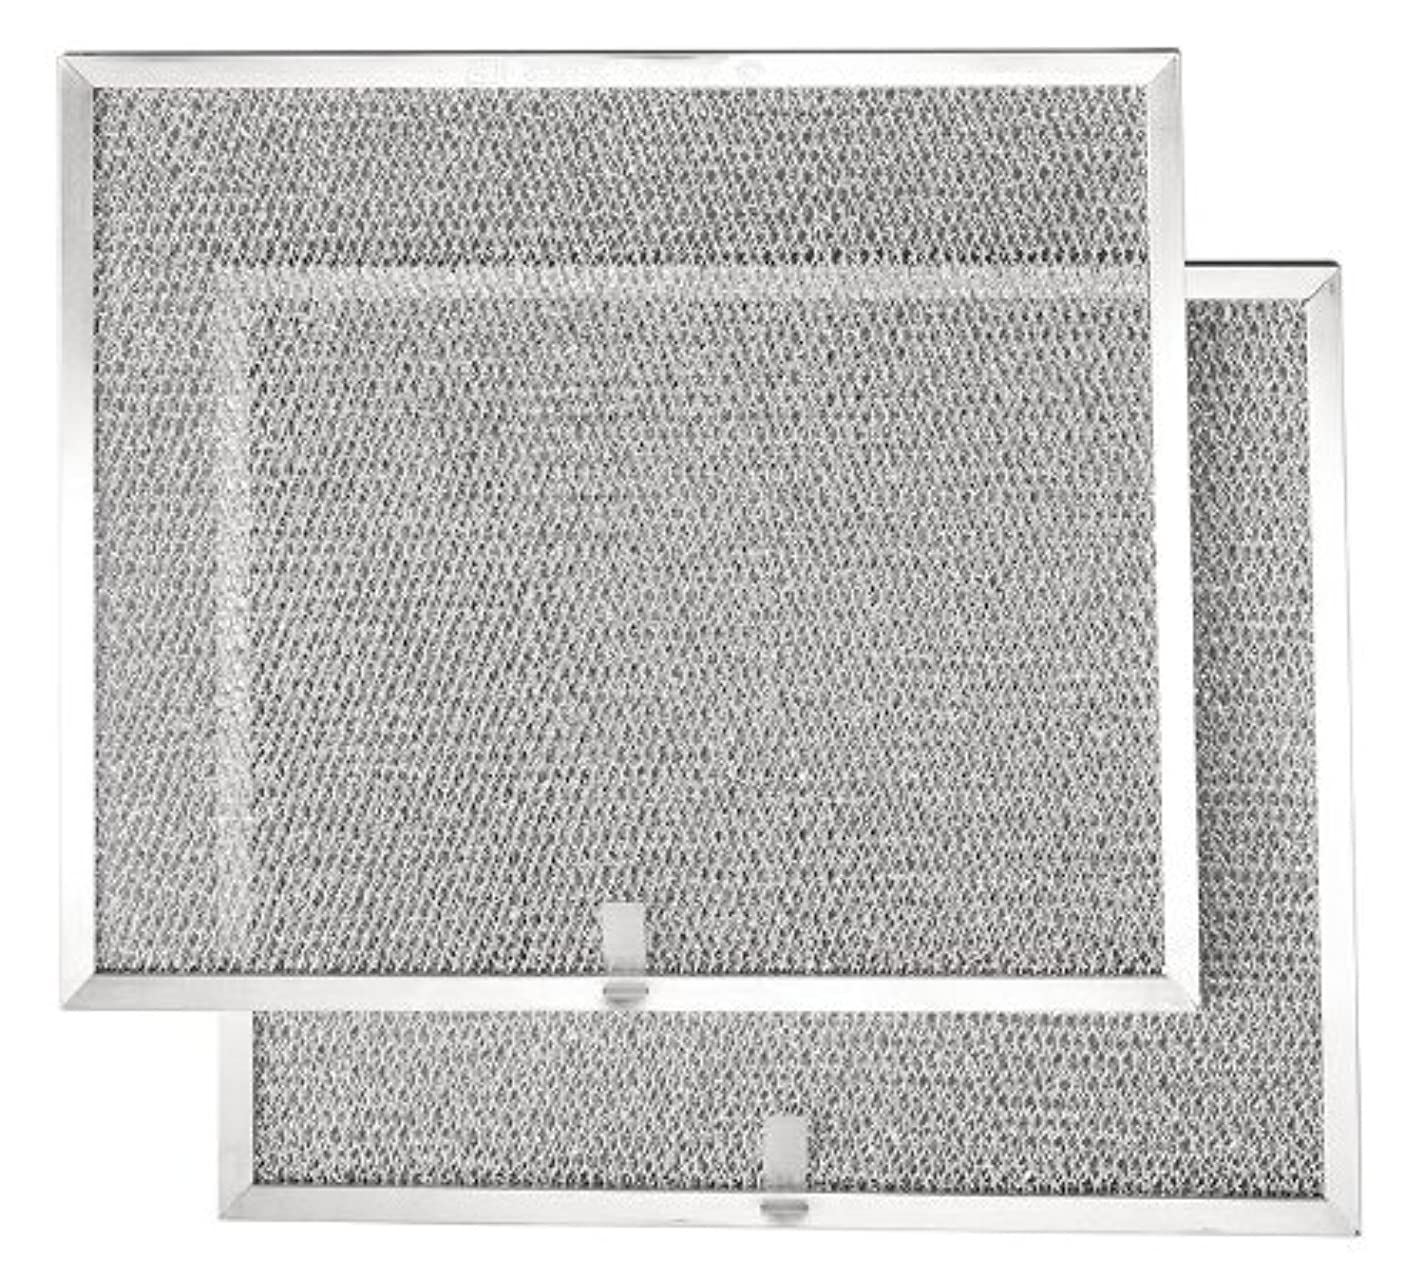 """Broan BPS1FA30 Replacement Filters for QS1 and WS1 30"""" Range Hoods, Aluminum, 2-Pack"""